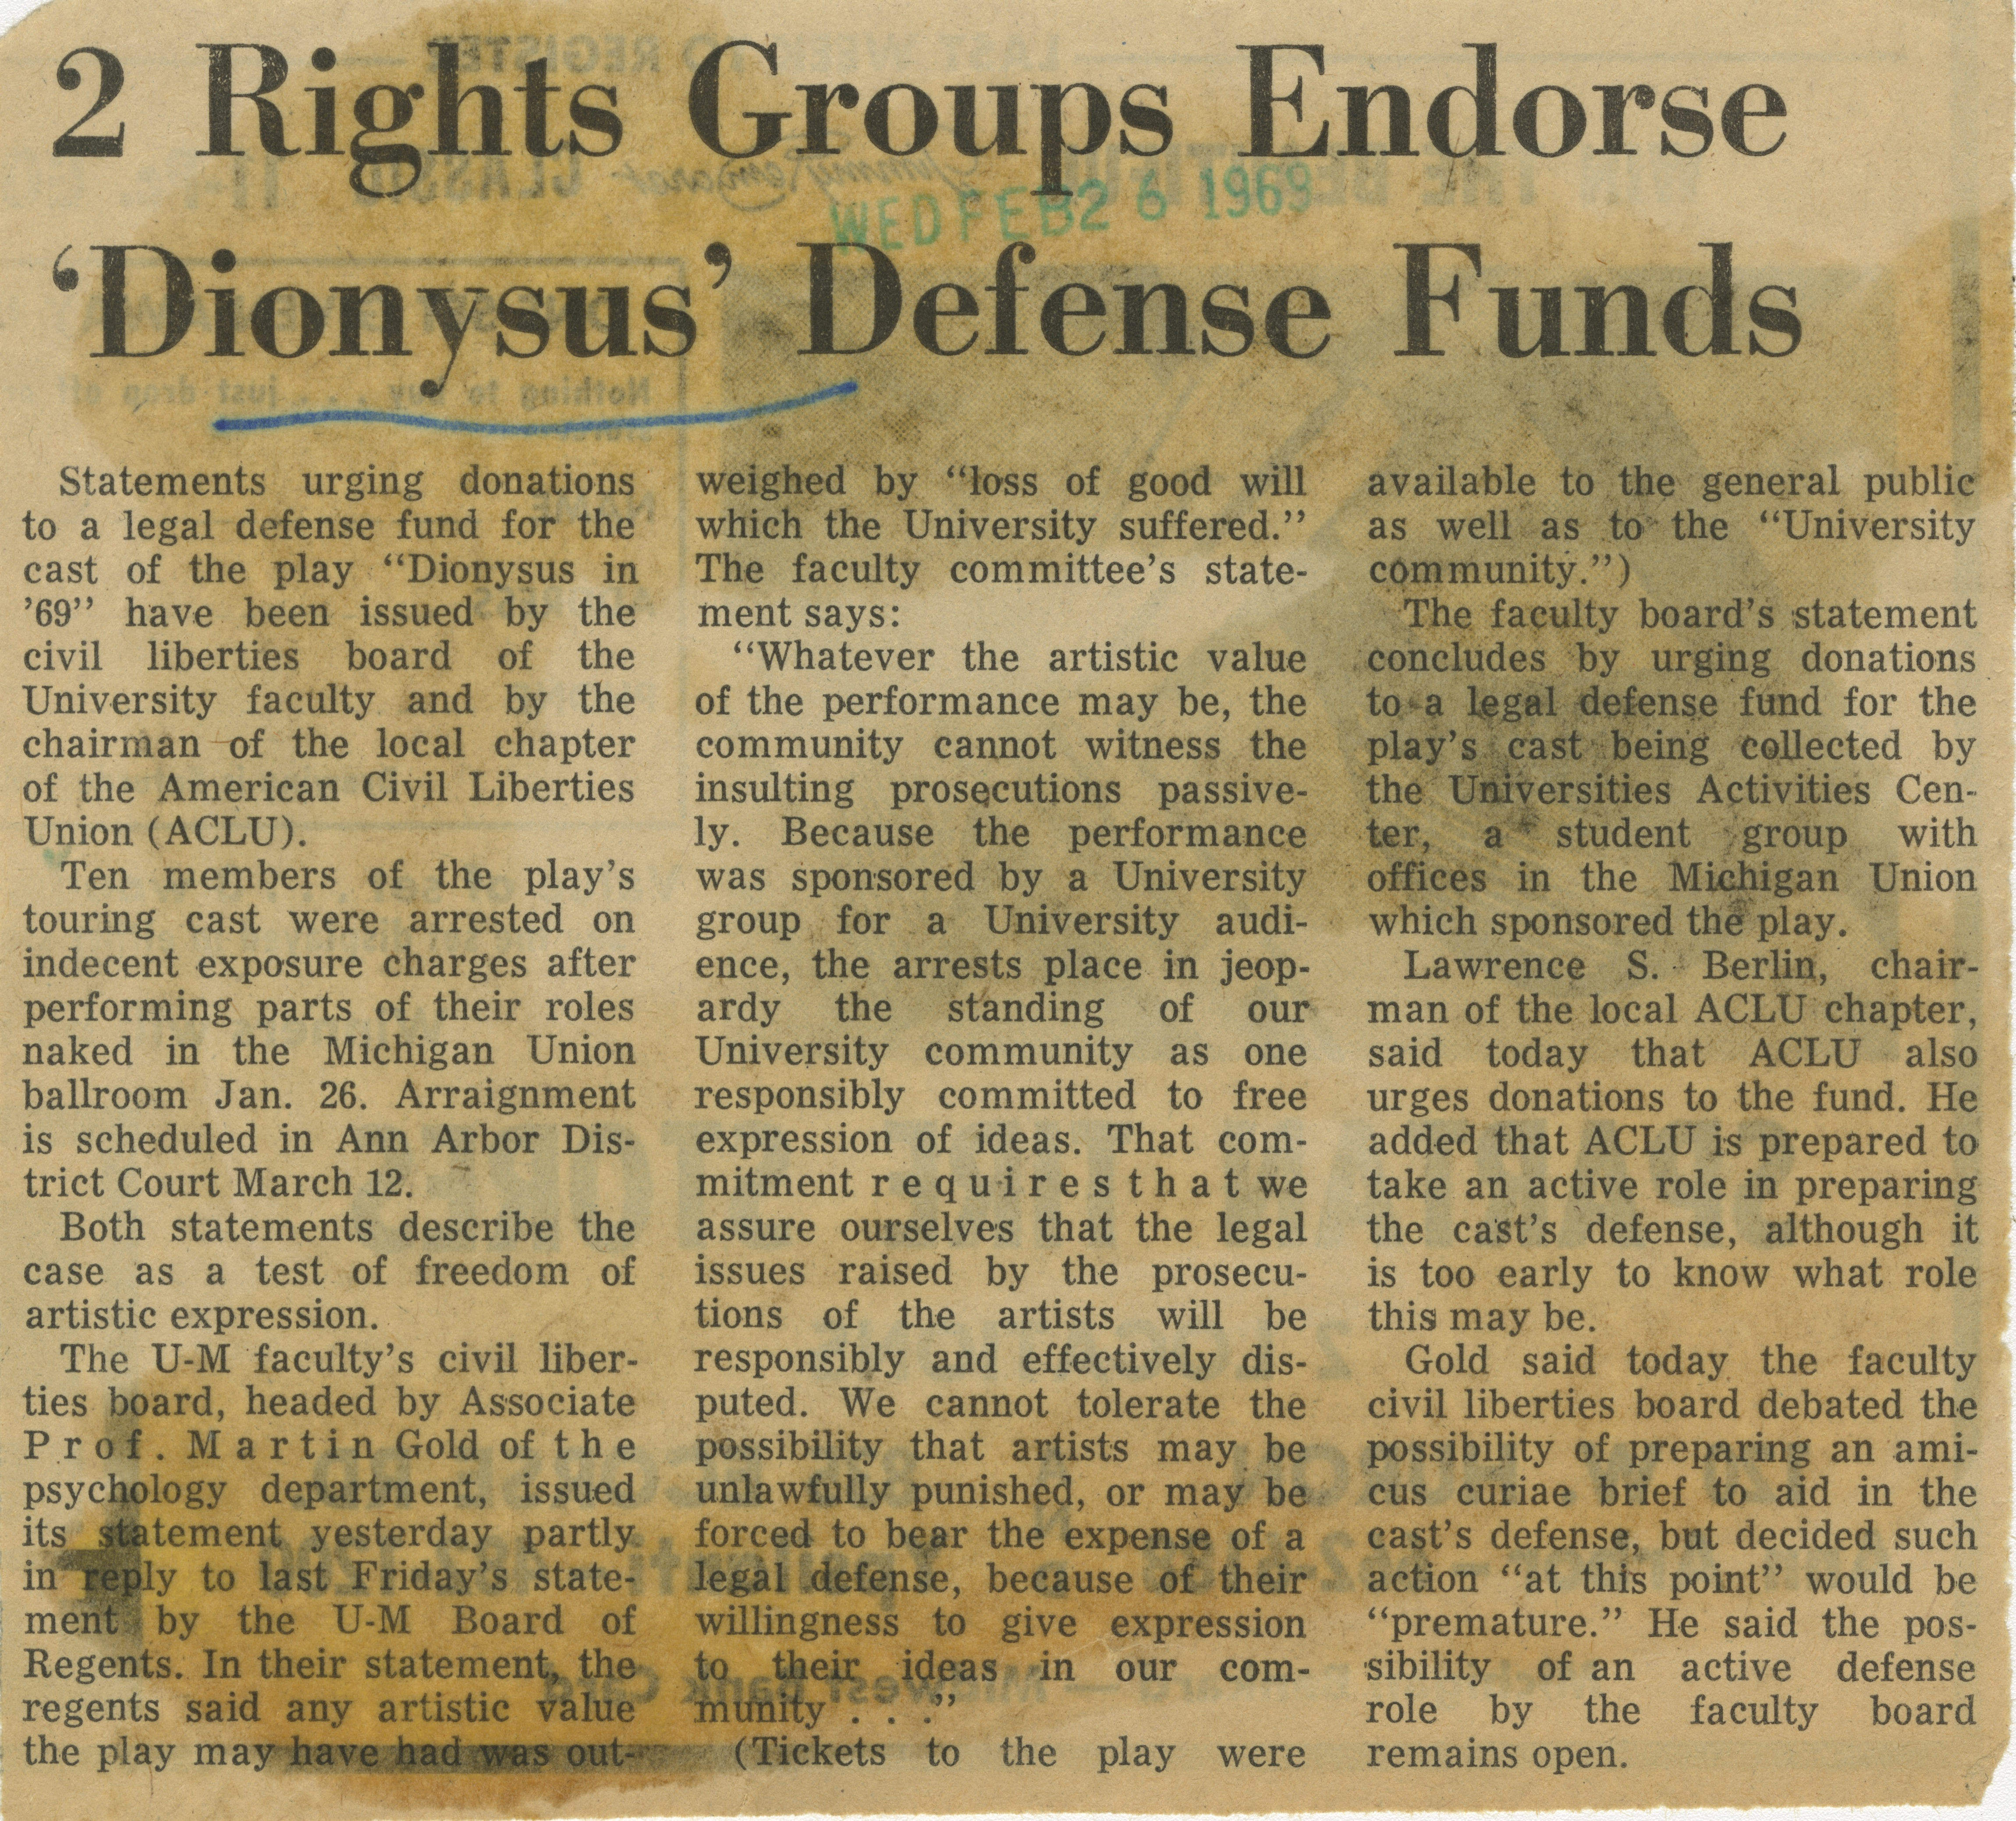 2 Rights Groups Endorse 'Dionysus' Defense Funds image